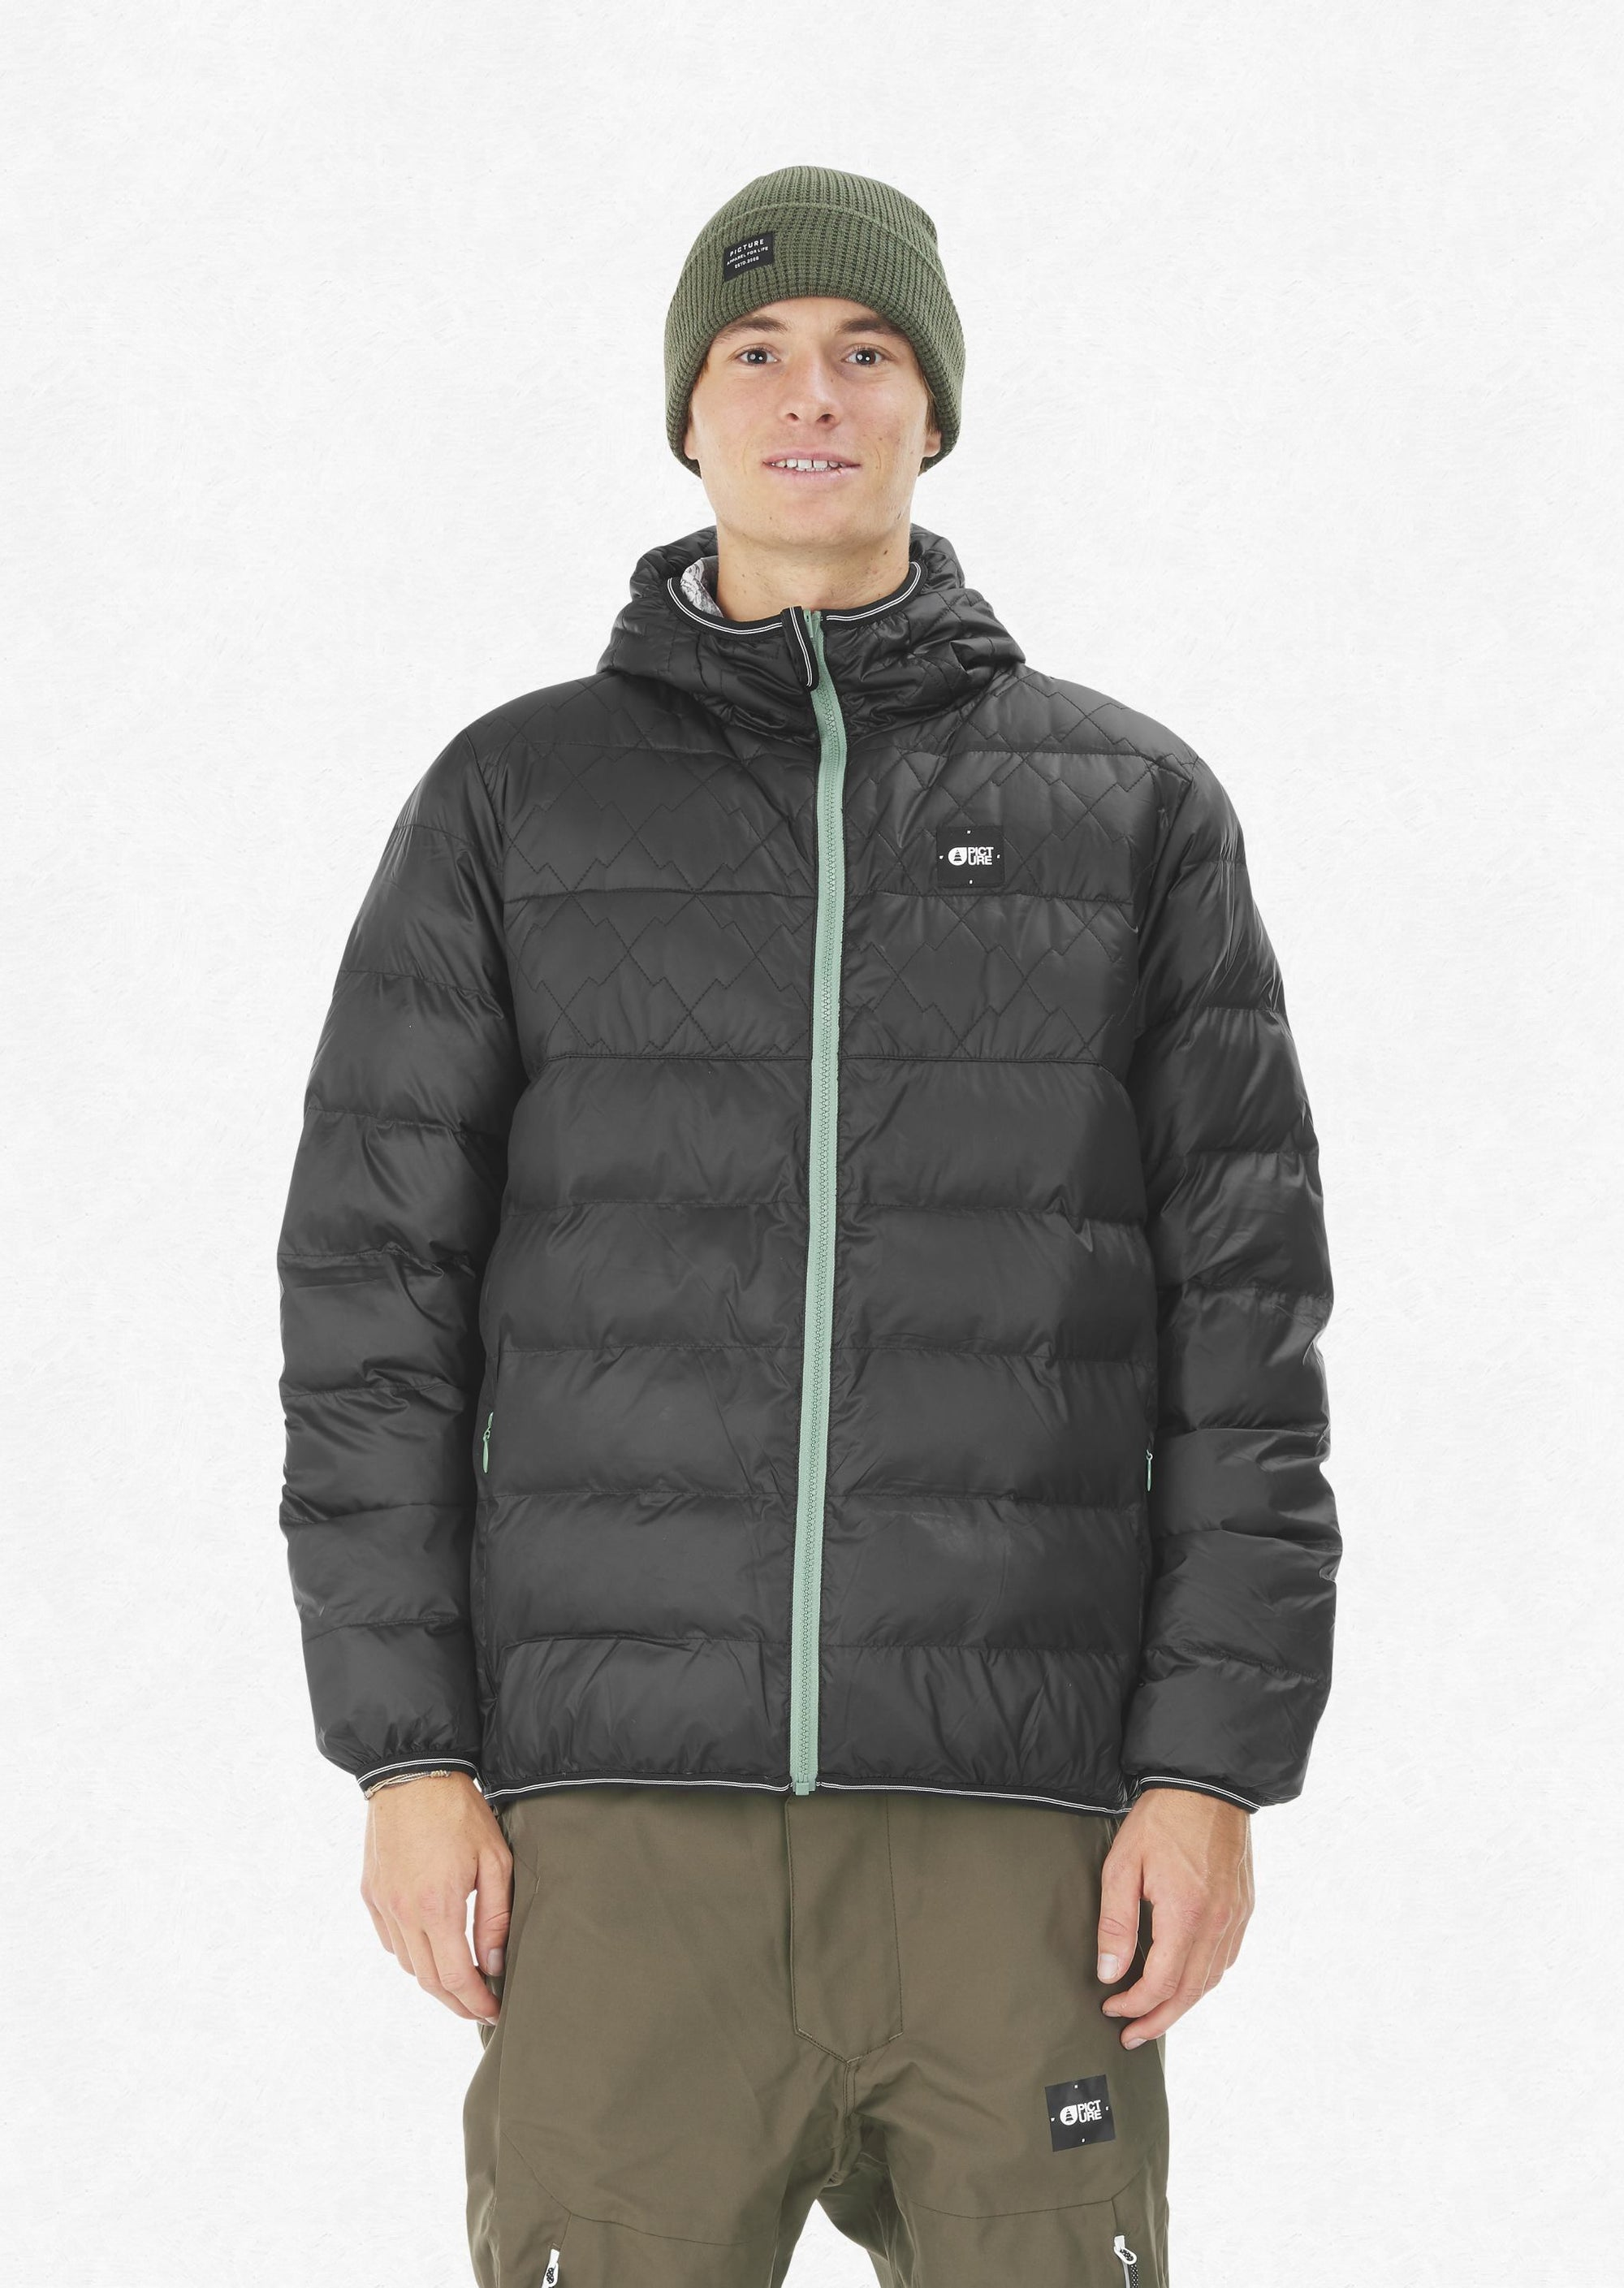 Picture Organic - Men's Scape Jacket - 100% Recycled Polyester - Weekendbee - sustainable sportswear